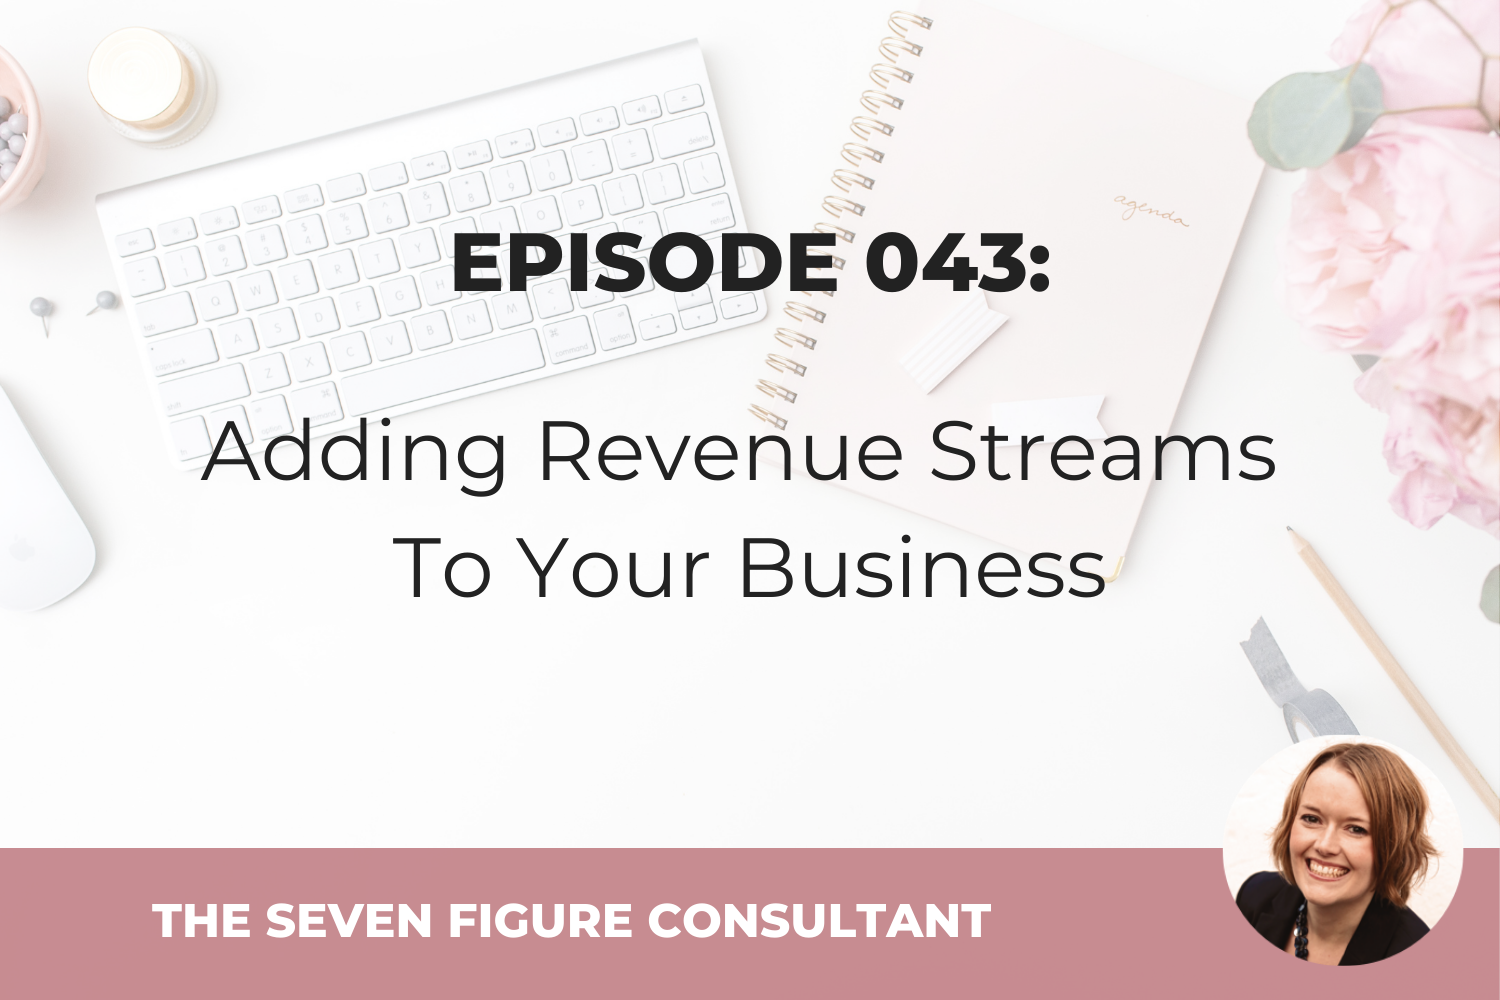 Episode 043: Adding Revenue Streams To Your Business